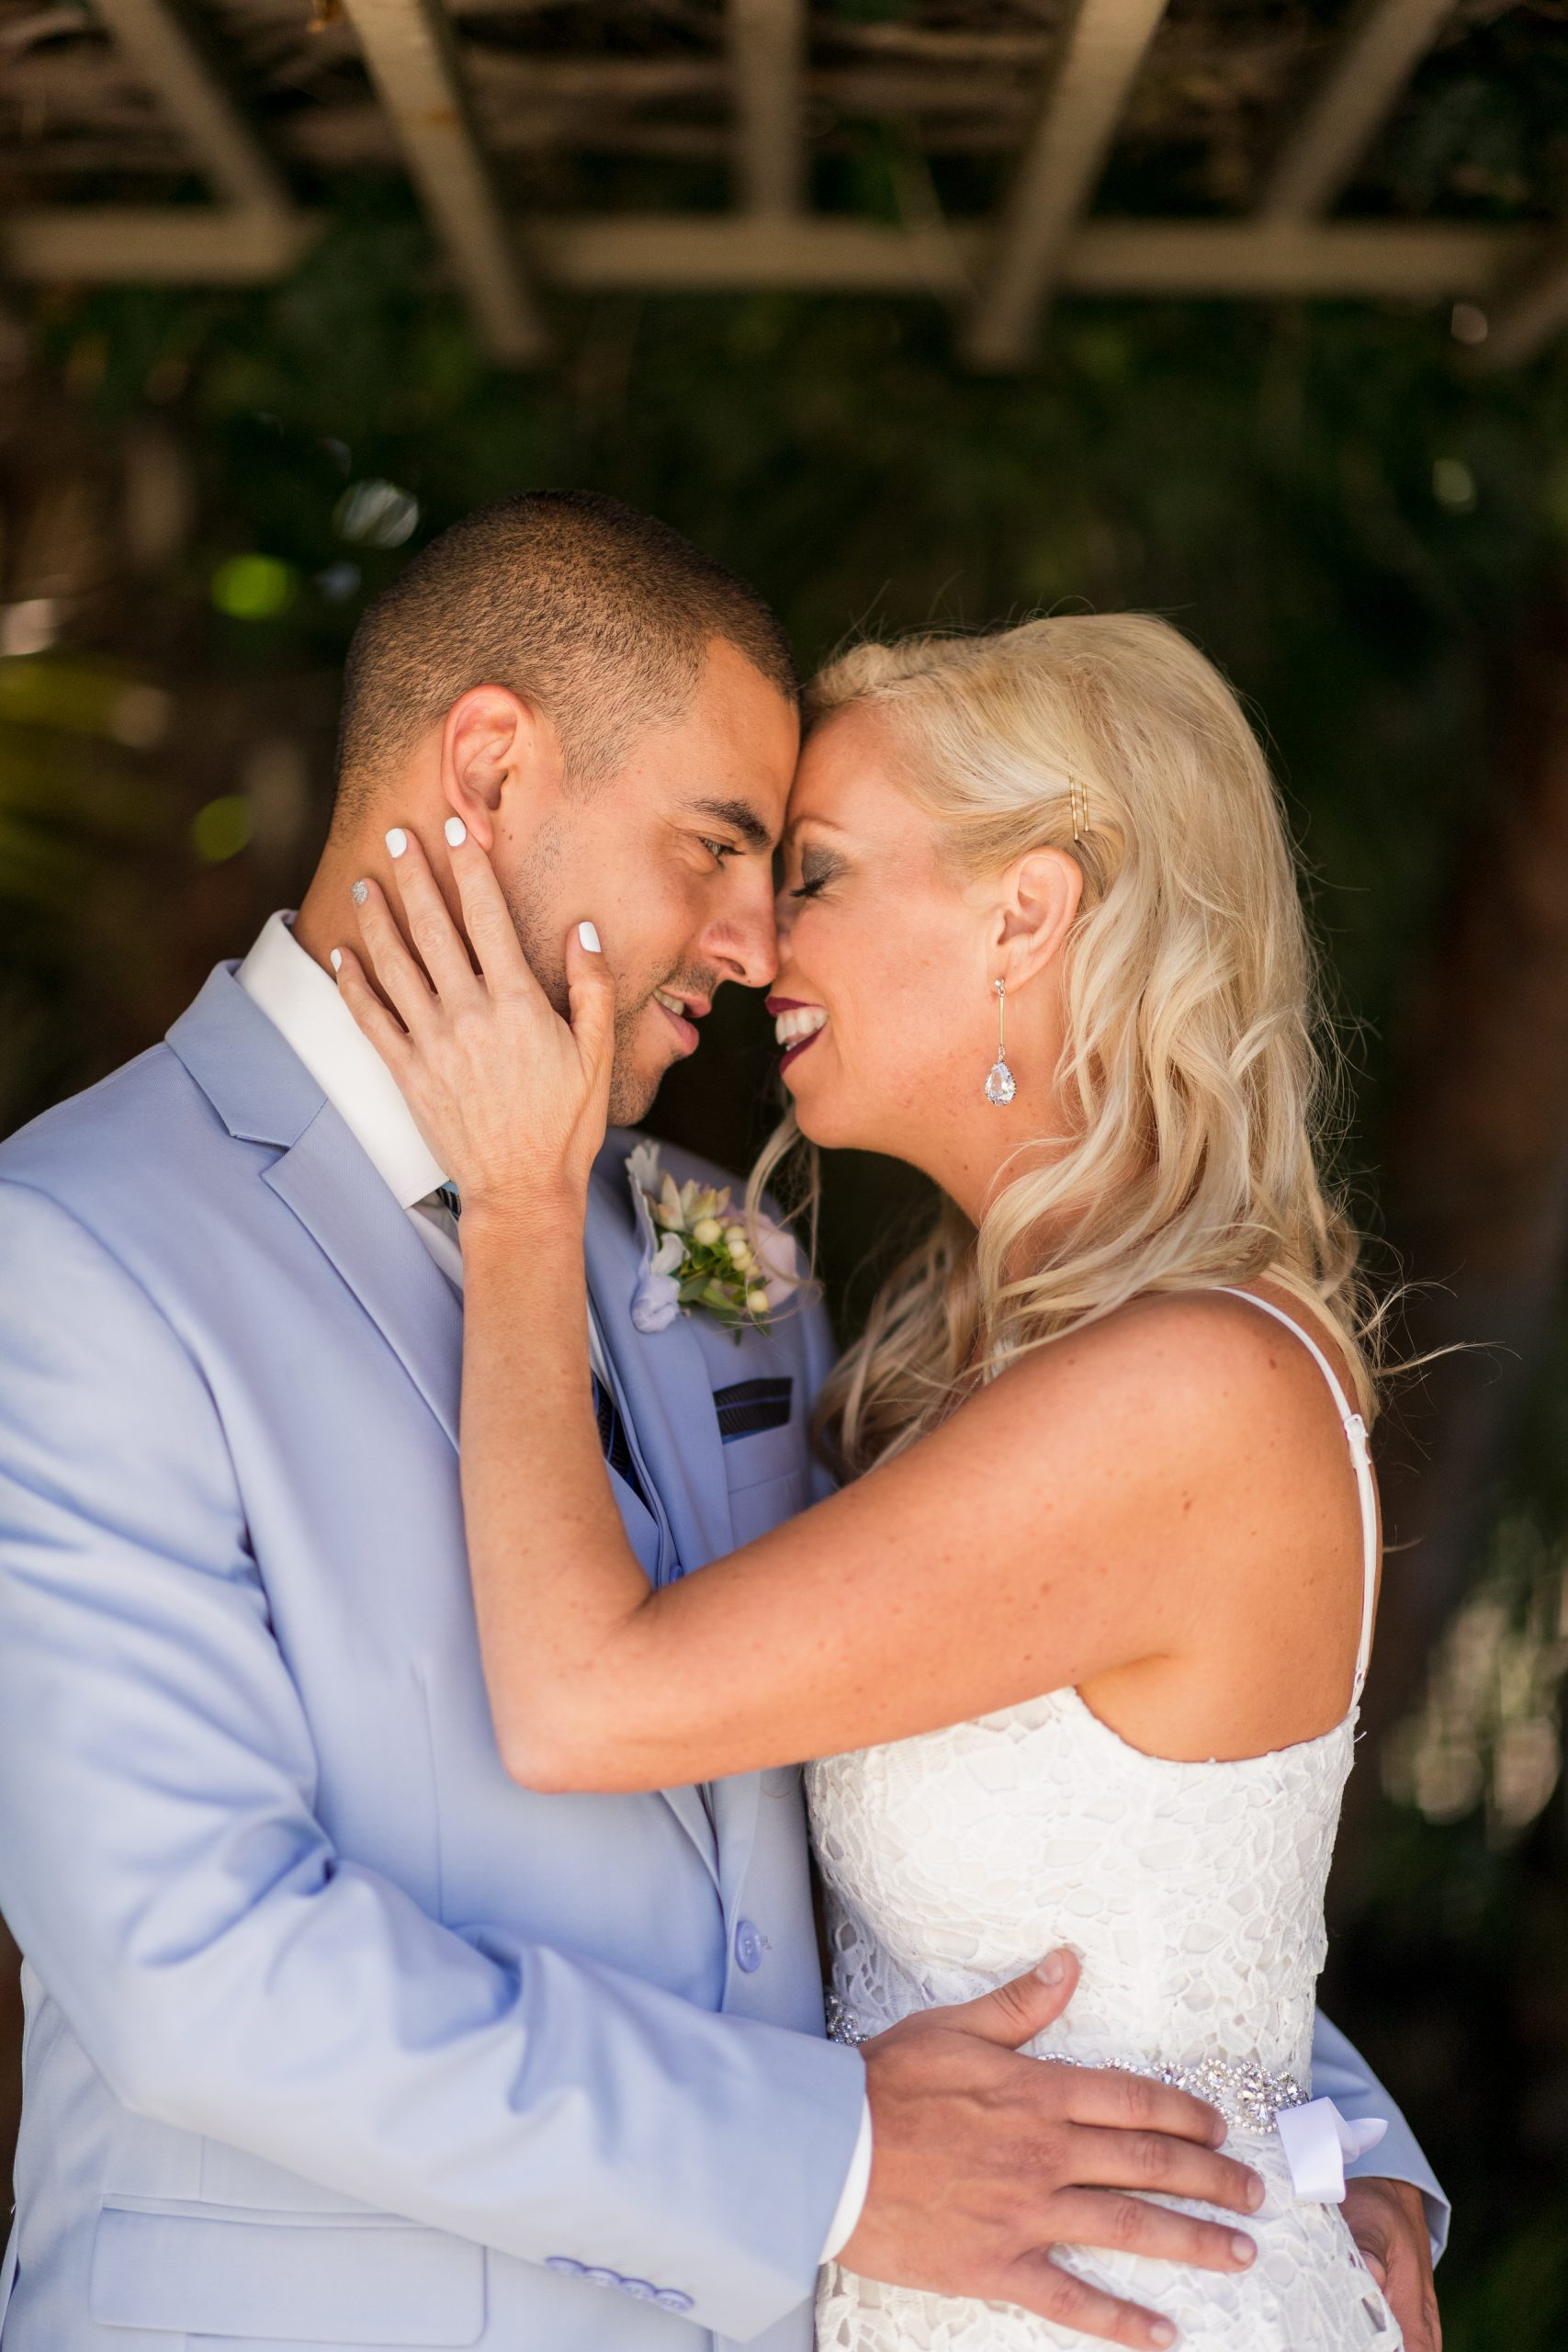 5 Reasons You Should Have a Courthouse Wedding in San Diego